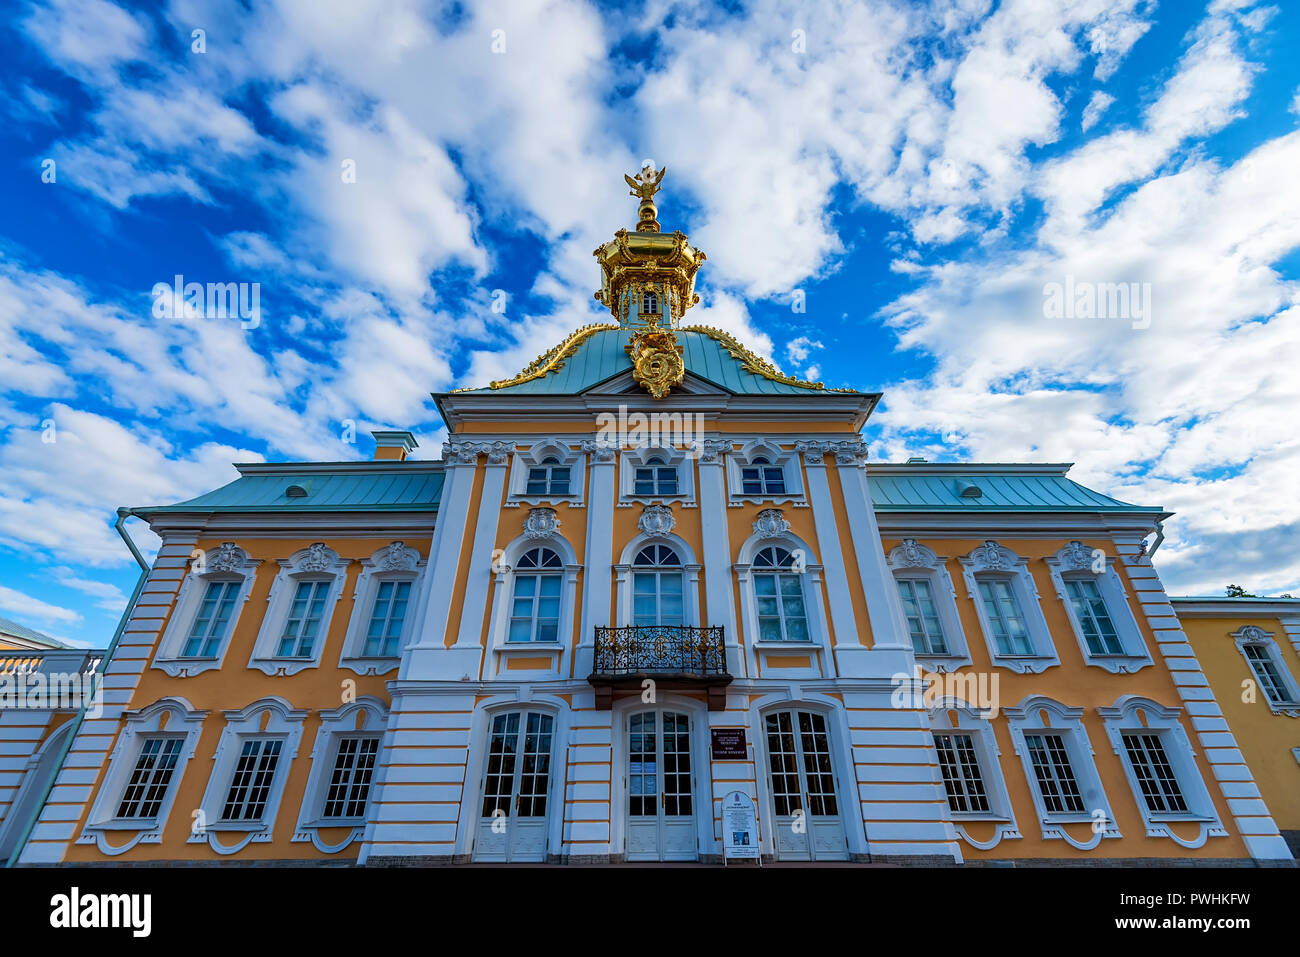 View of Catherine's II Palace in Tsarskoe Selo, Russia - Stock Image